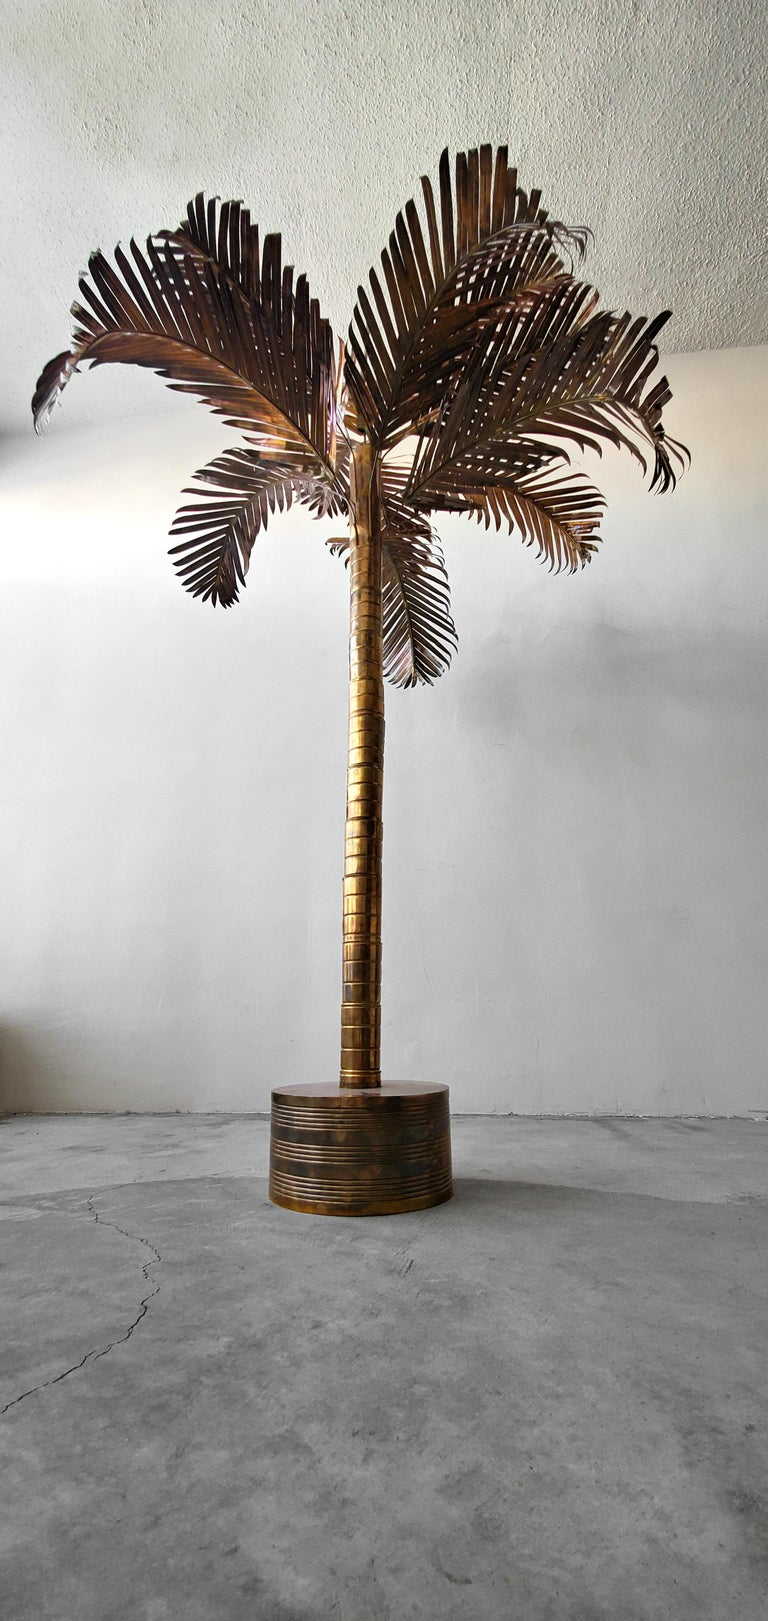 Gorgeous Regency style, vintage brass palm tree. Beautiful, varying degrees of patina, adding contrast and interest. This tree is large, measuring over 8ft, perfect size to be used as a retail fixture or in a home with high ceilings.  Tree is in